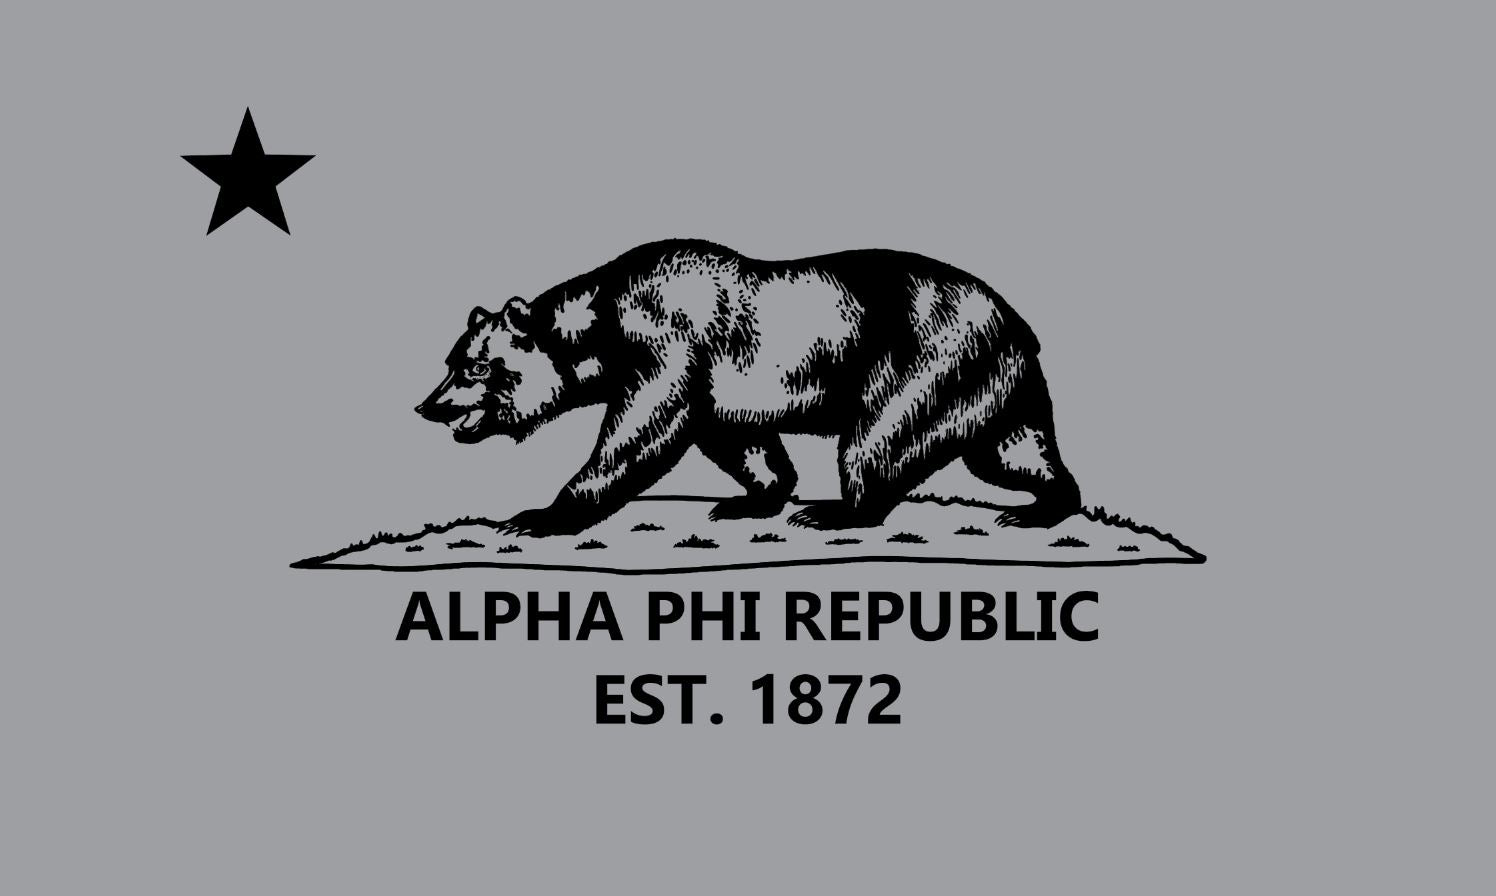 Alpha Phi Republic 3' x 5' Flag